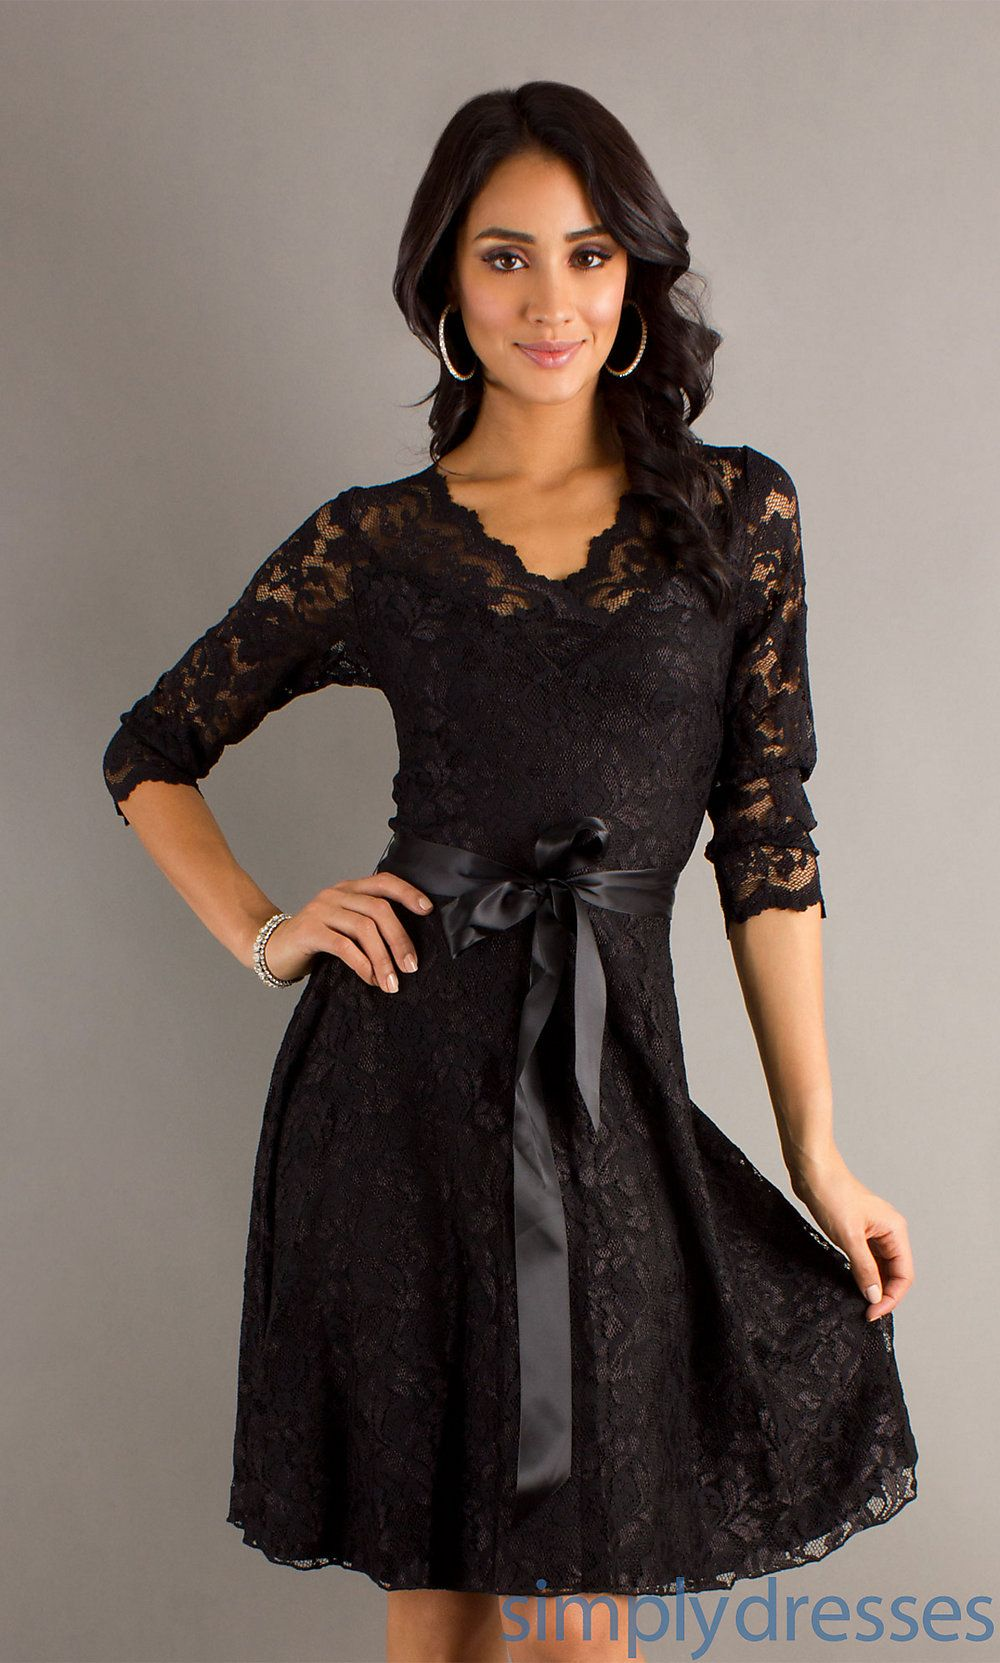 Black long sleeve wedding dresses  Short black lace dress  simply dresses  dresses   Pinterest